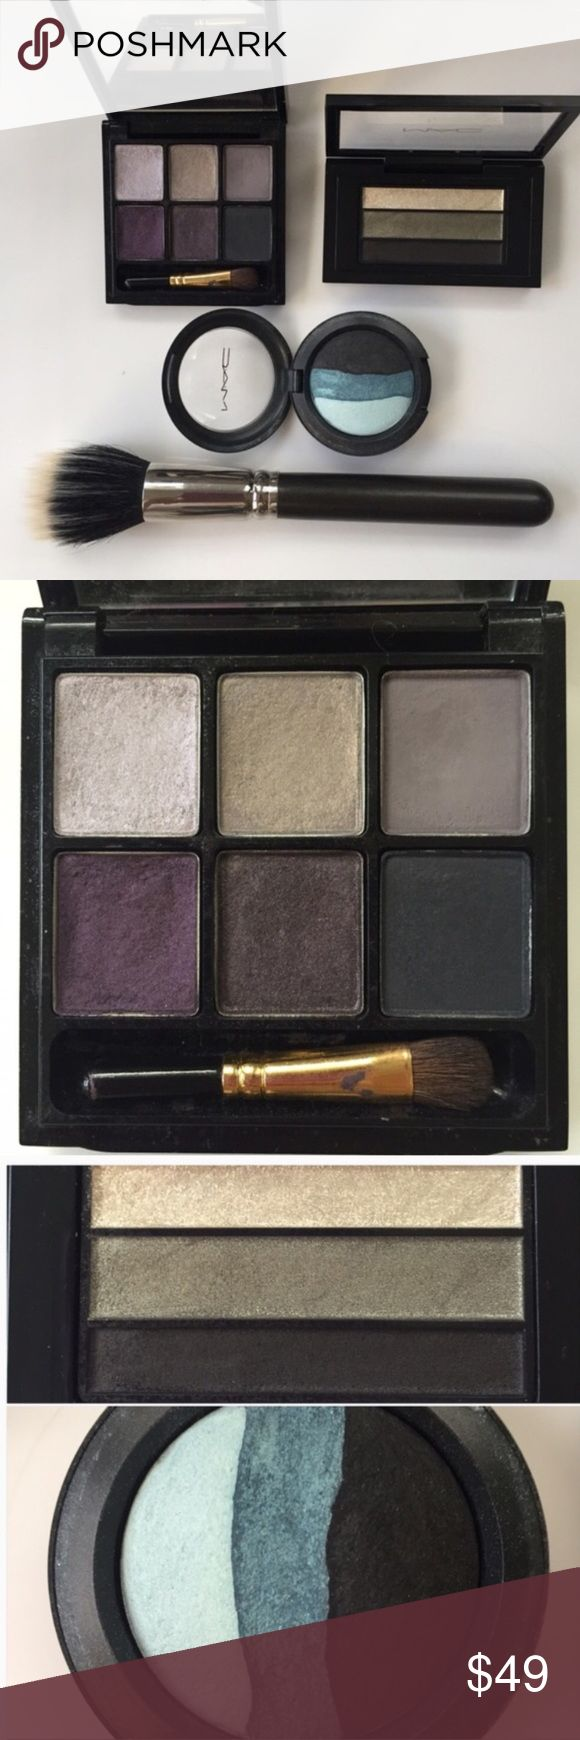 MAC Bundle Authentic MAC palettes and full size brush #187. You get 6 eyeshadow pallet, very light use. 3 shadow pallet in green/black and gold shimmer. Blue My Mind Mineralized 3 in 1 eyeshadow and the #187 brush, I used it with loose powder. Everything has been sanitized. MAC Cosmetics Makeup Eyeshadow